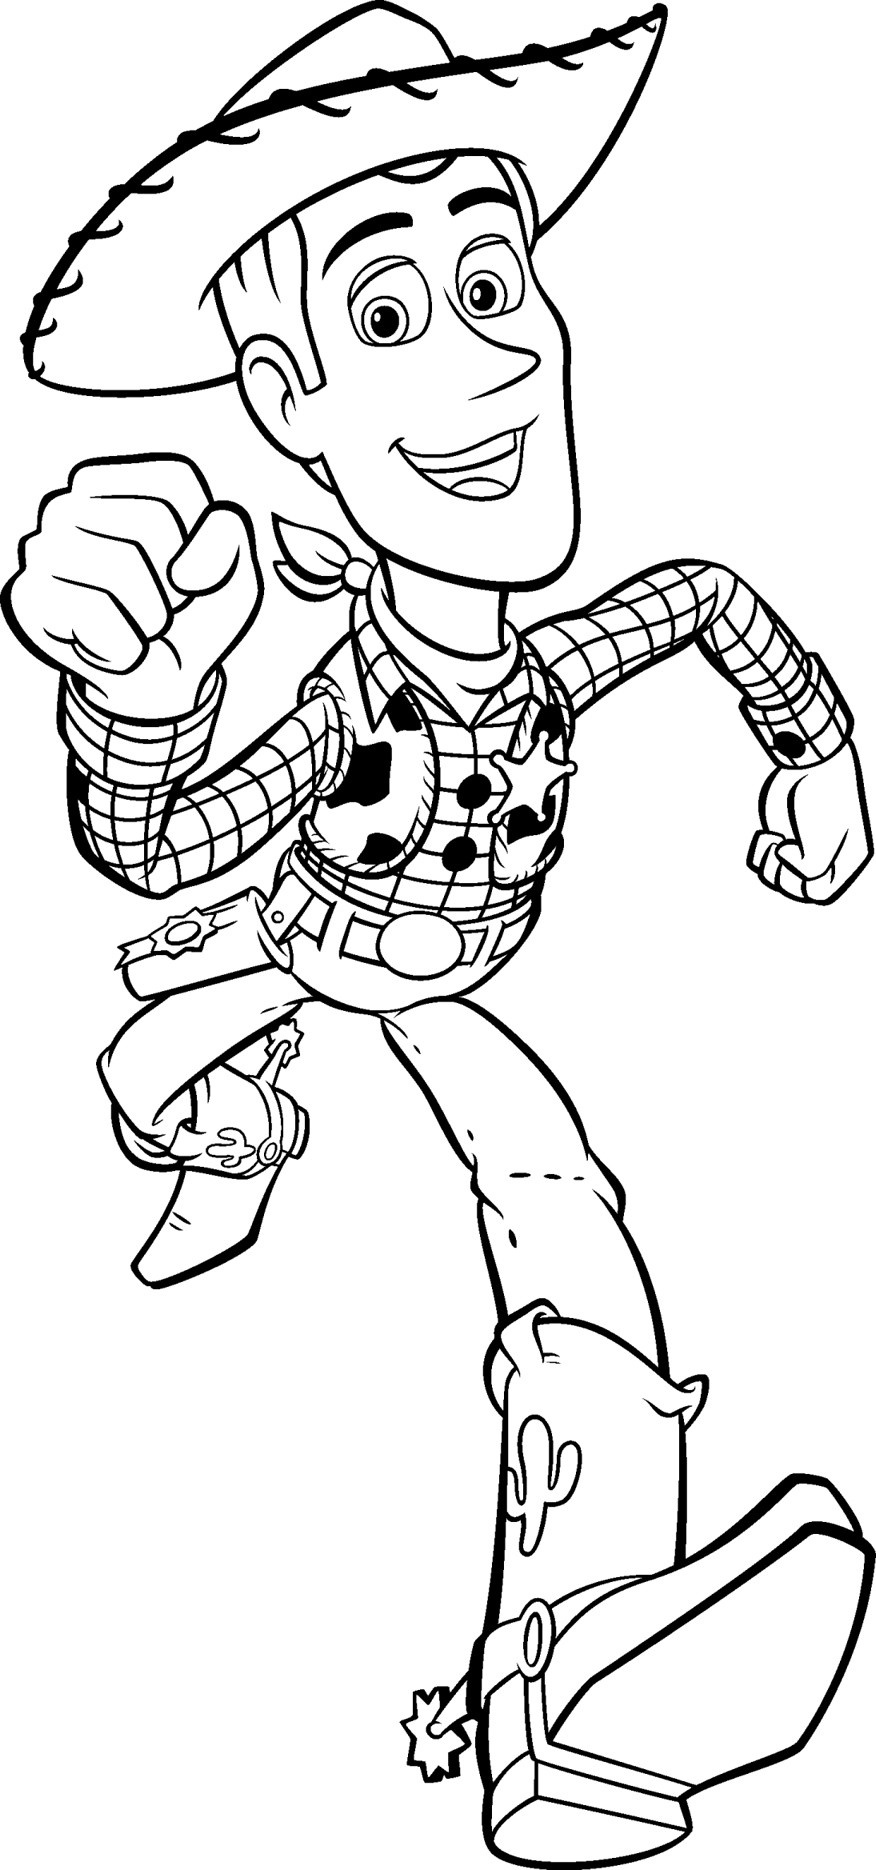 Free Coloring Sheets Disney  Free Printable Disney Toy Story Cartoon Coloring Pages